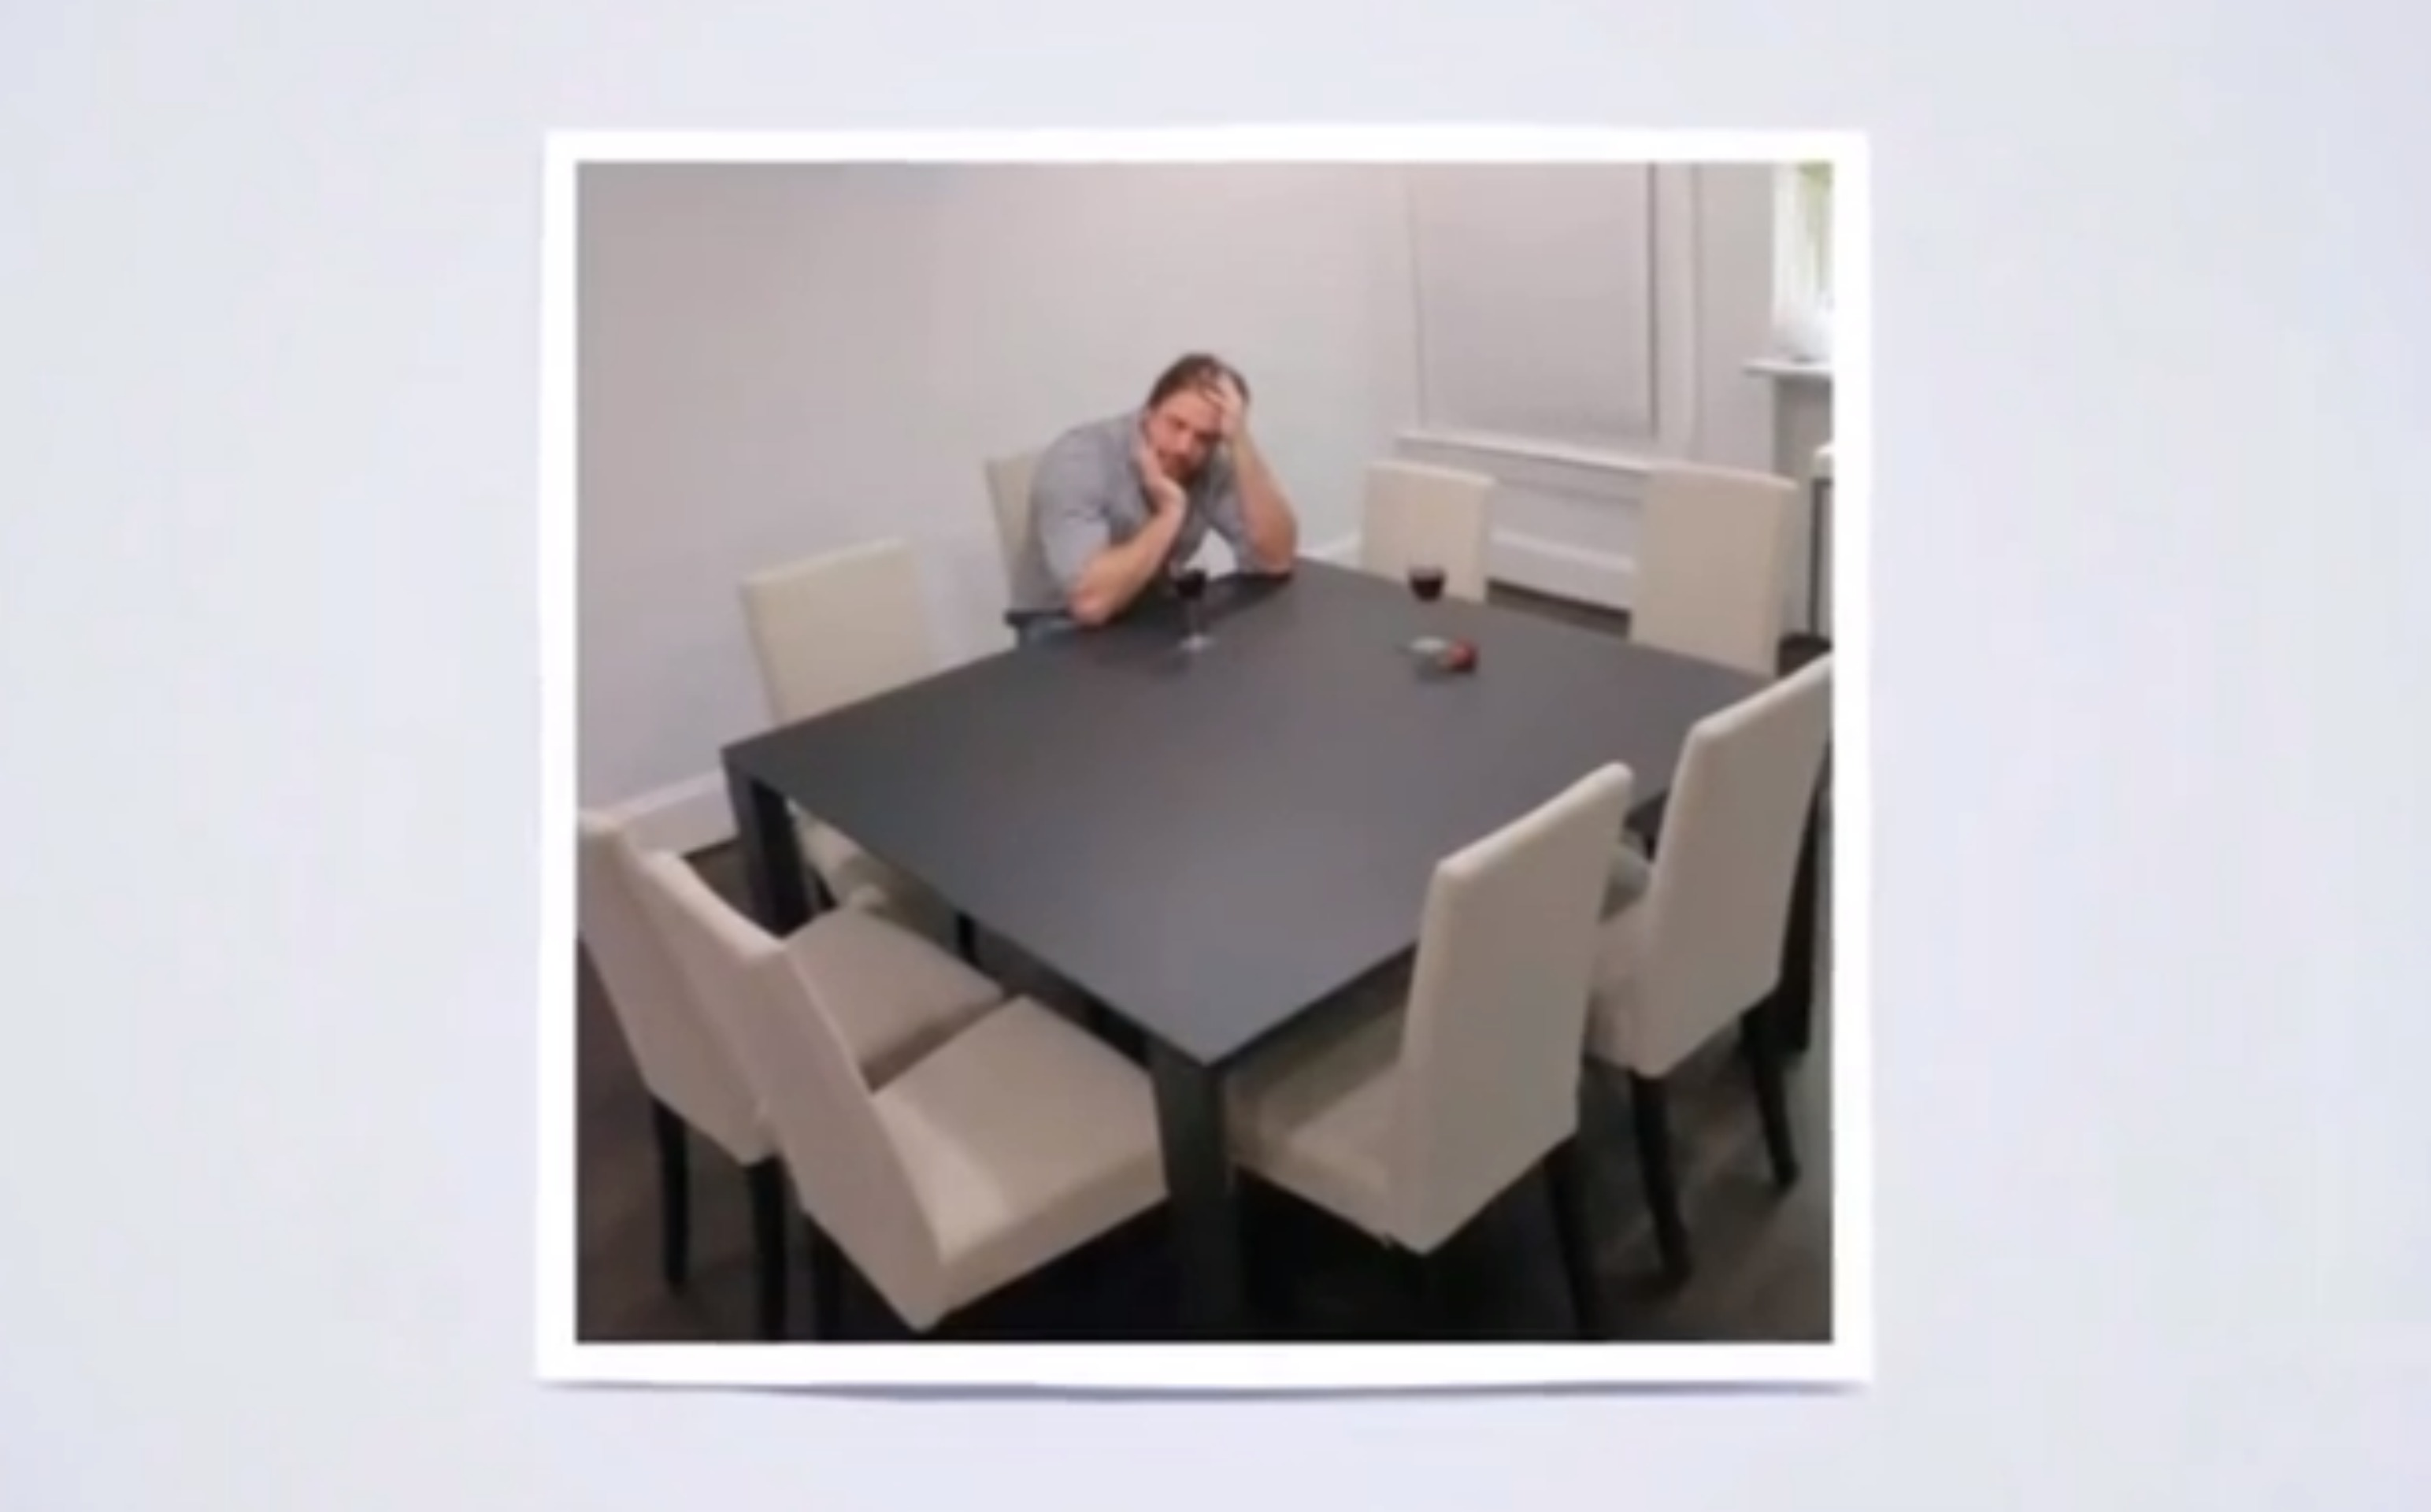 moping at a conference table